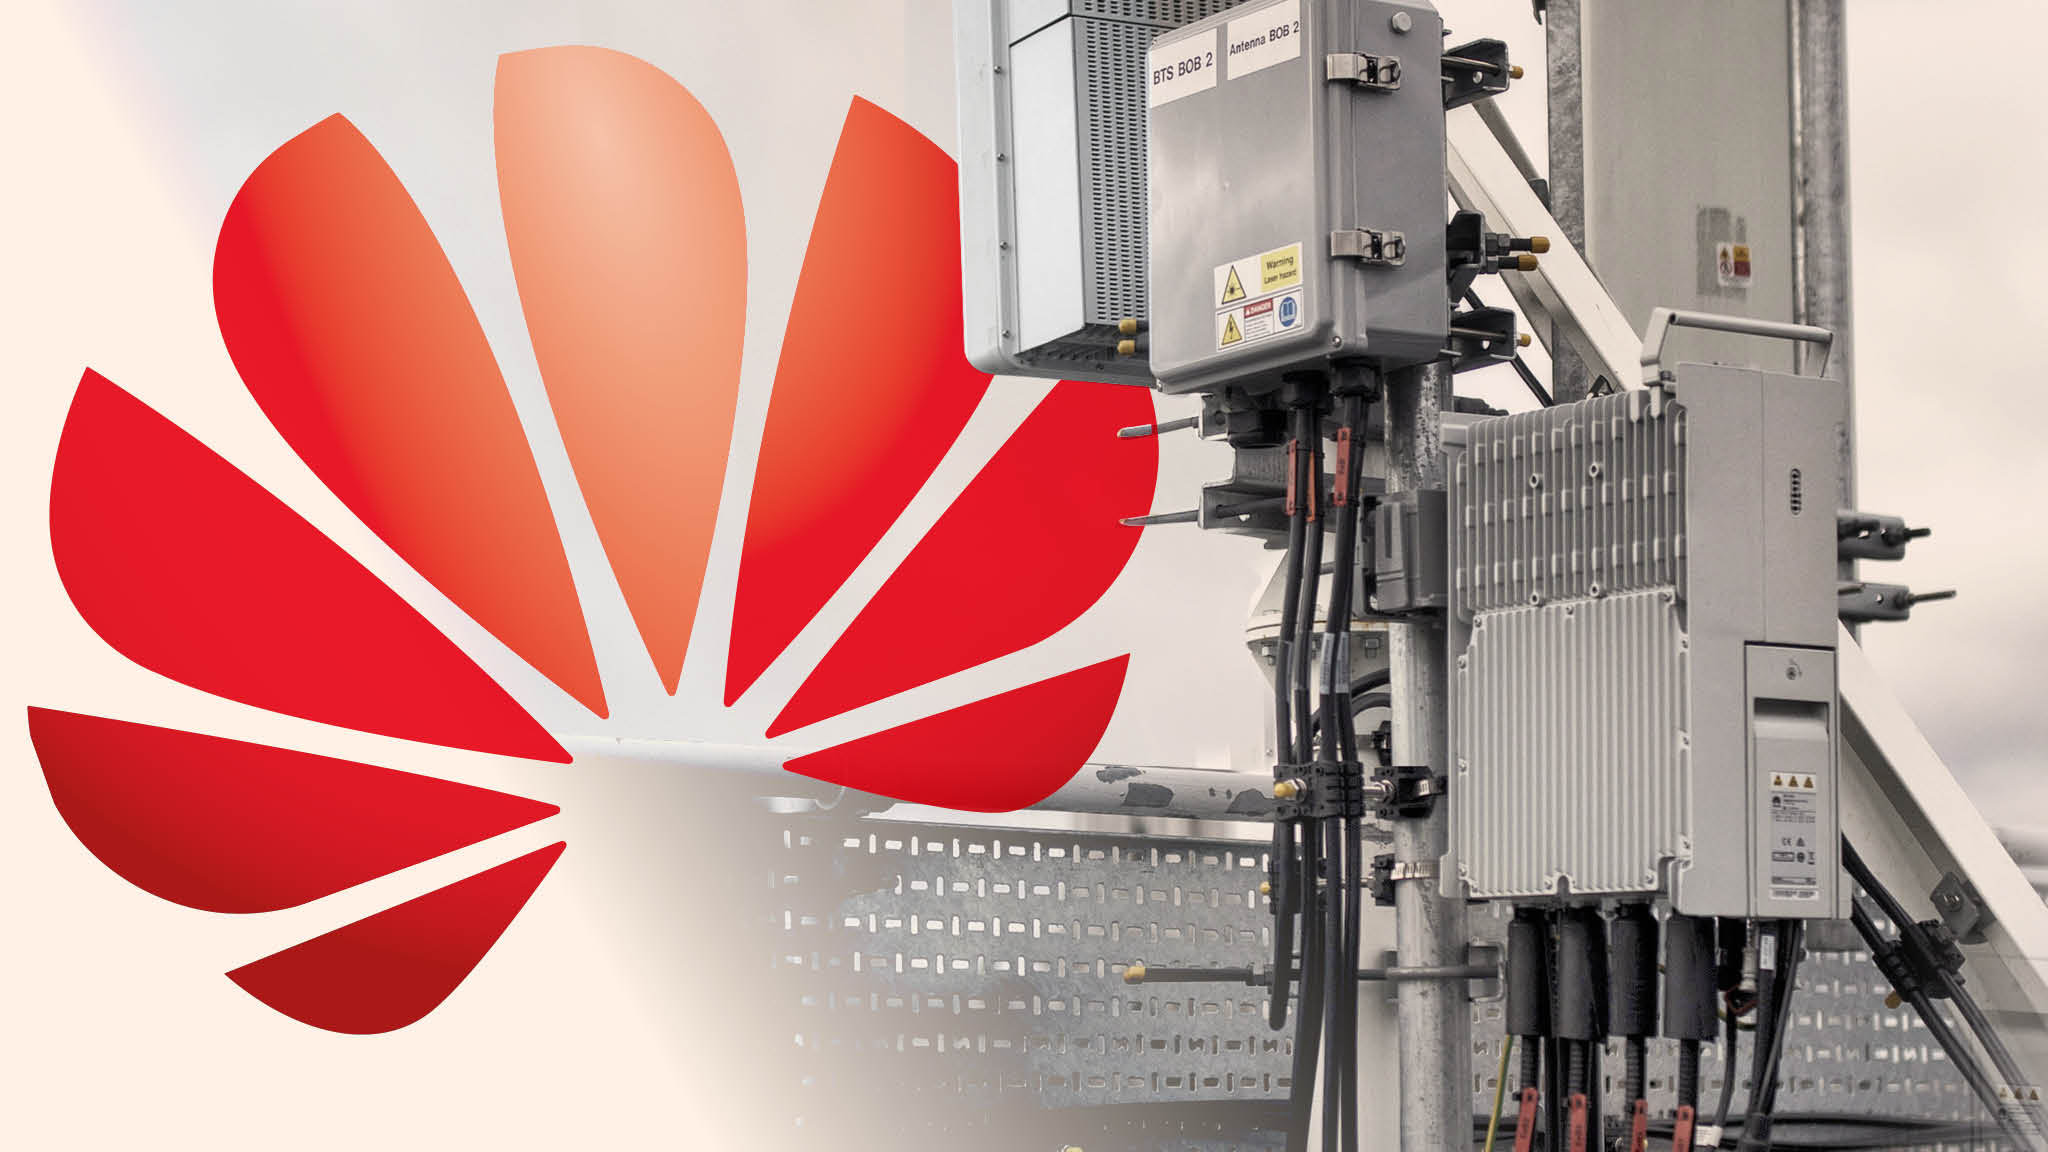 What are the main security risks of using Huawei for 5G